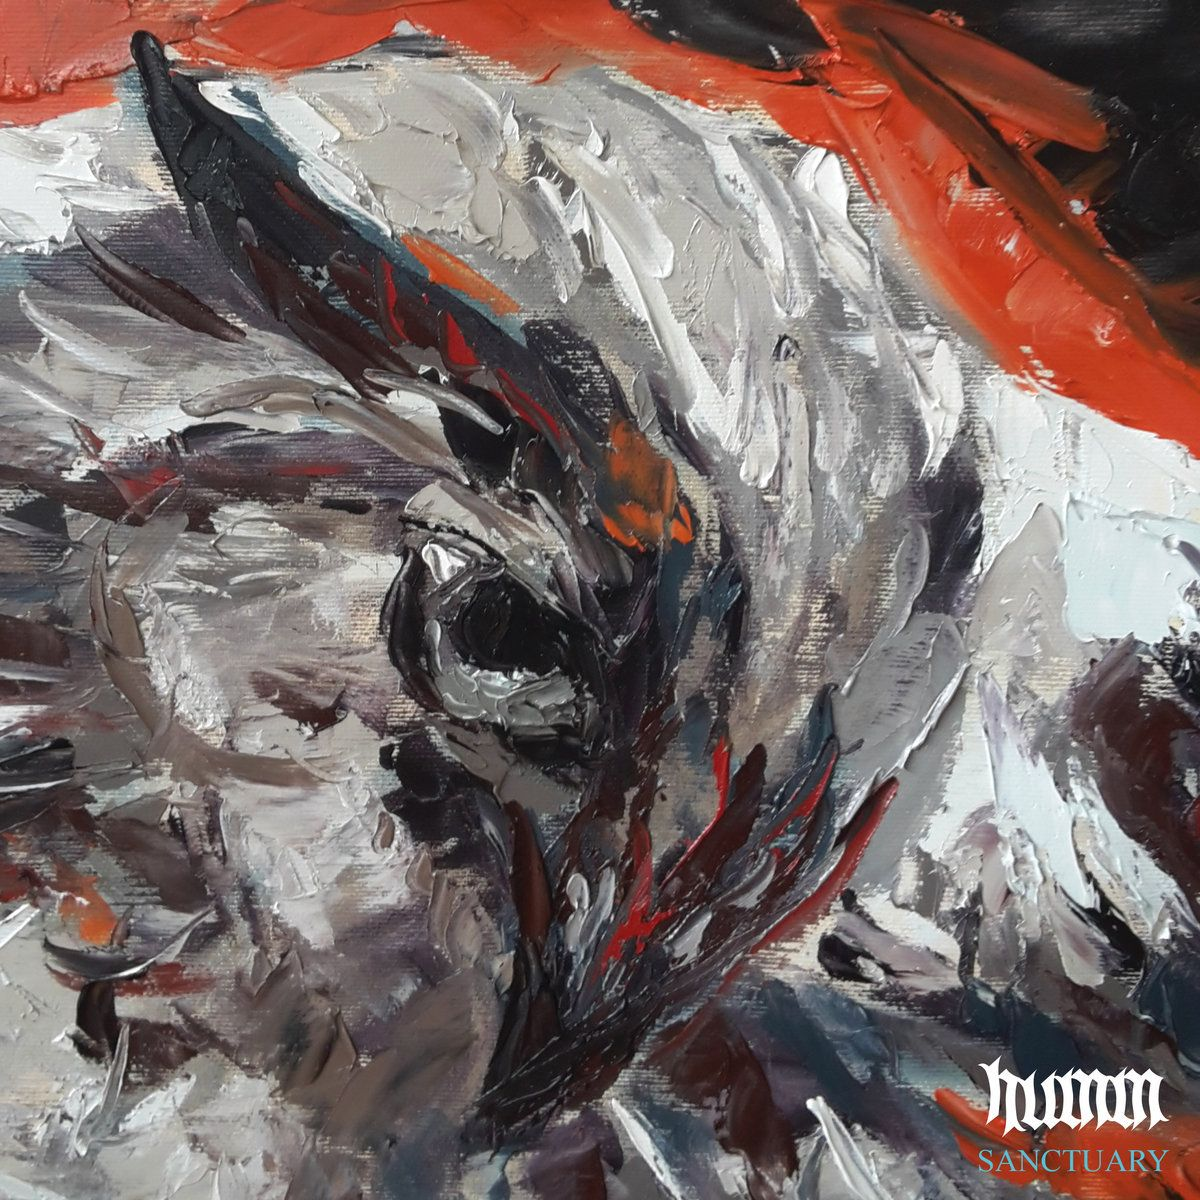 Review for Humm - Sanctuary